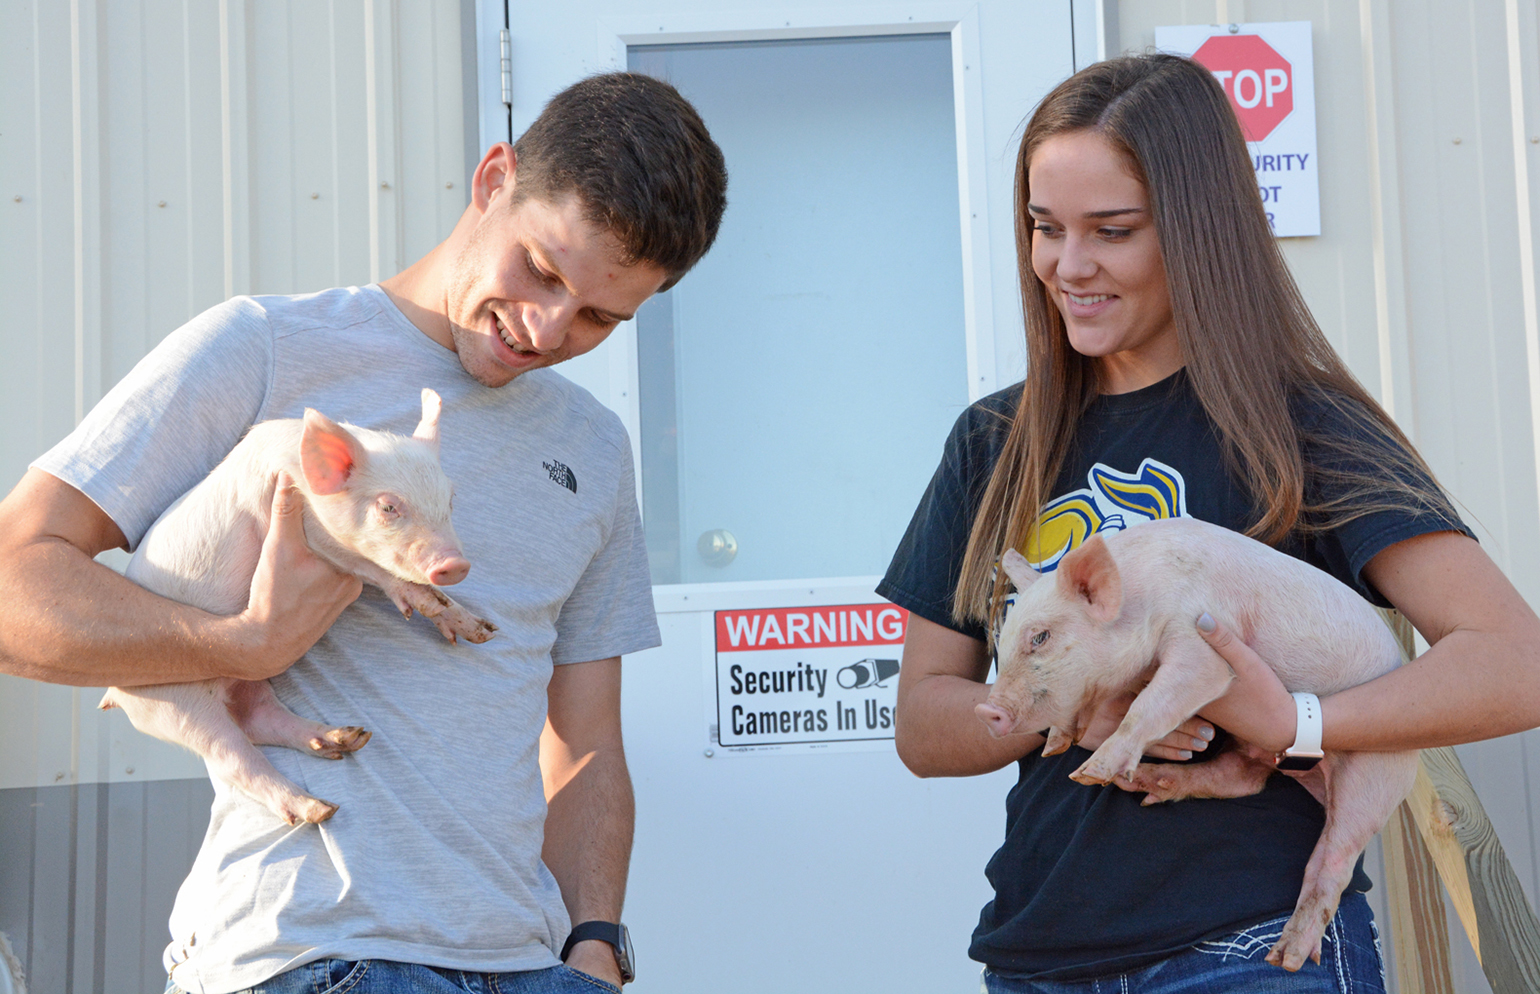 Karl II Schenk and his sister, Kyra, holds two of the healthy, antibiotic-free pigs